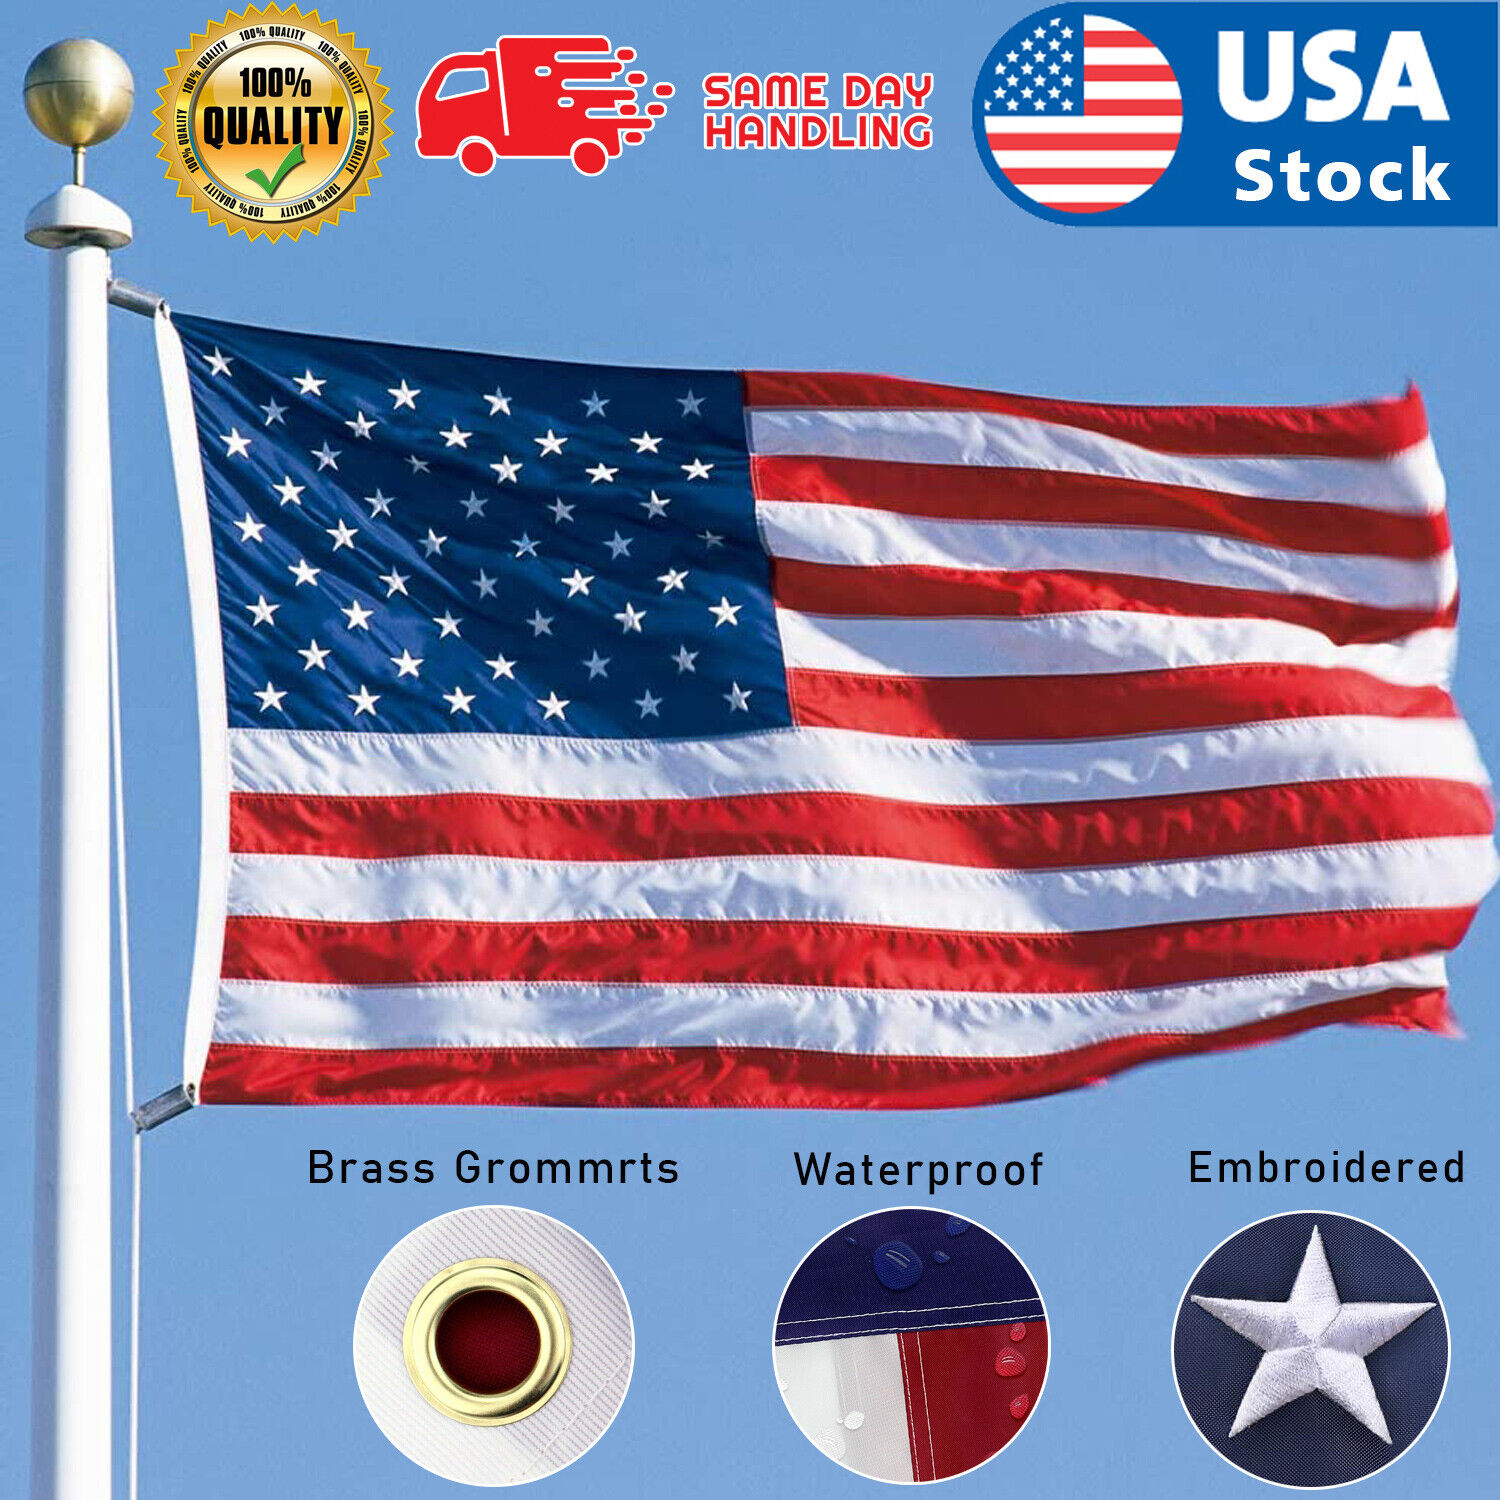 American Flag 3×5 ft 420D Nylon UV Protected Embroidered Stars Outside US Flag Collectibles